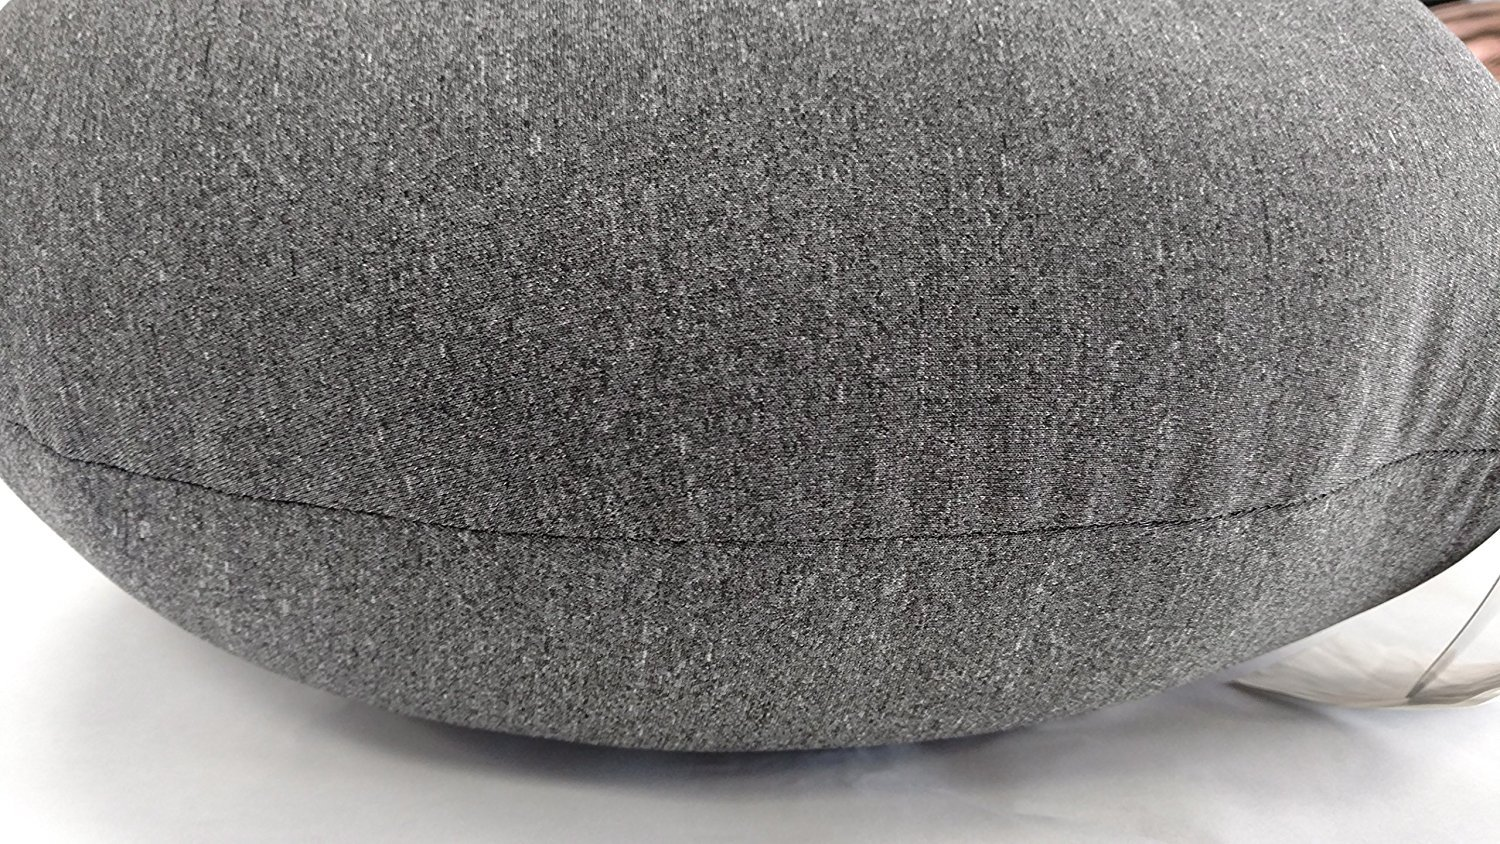 """Tache Micro Bead Solid Grey Realistic Stone Pillow - Squishy Realistic Novelty Pebble Rock Nature Décor - Round Cushion 12x16"""" - Nature-inspired Design: These stone pillows were designed to resemble pebble stones; featuring a realistic appearance with the softness and comfort of a pillow. Micro-bead filling: The micro beads are super comfortable and promote relaxation. They also help keep the pillow breathable and cool along with its spandex outer shell. The fabric is stretchy and micro beads are squishy making it easy for versatile use. Uses: These pillows can be used as floor pillows, chair cushions, throw pillows, also as props for a photo studio or play. These are made from a very versatile and contemporary design that can be used in almost any room and for any purpose. - living-room-soft-furnishings, living-room, decorative-pillows - 81PzFarWvHL -"""